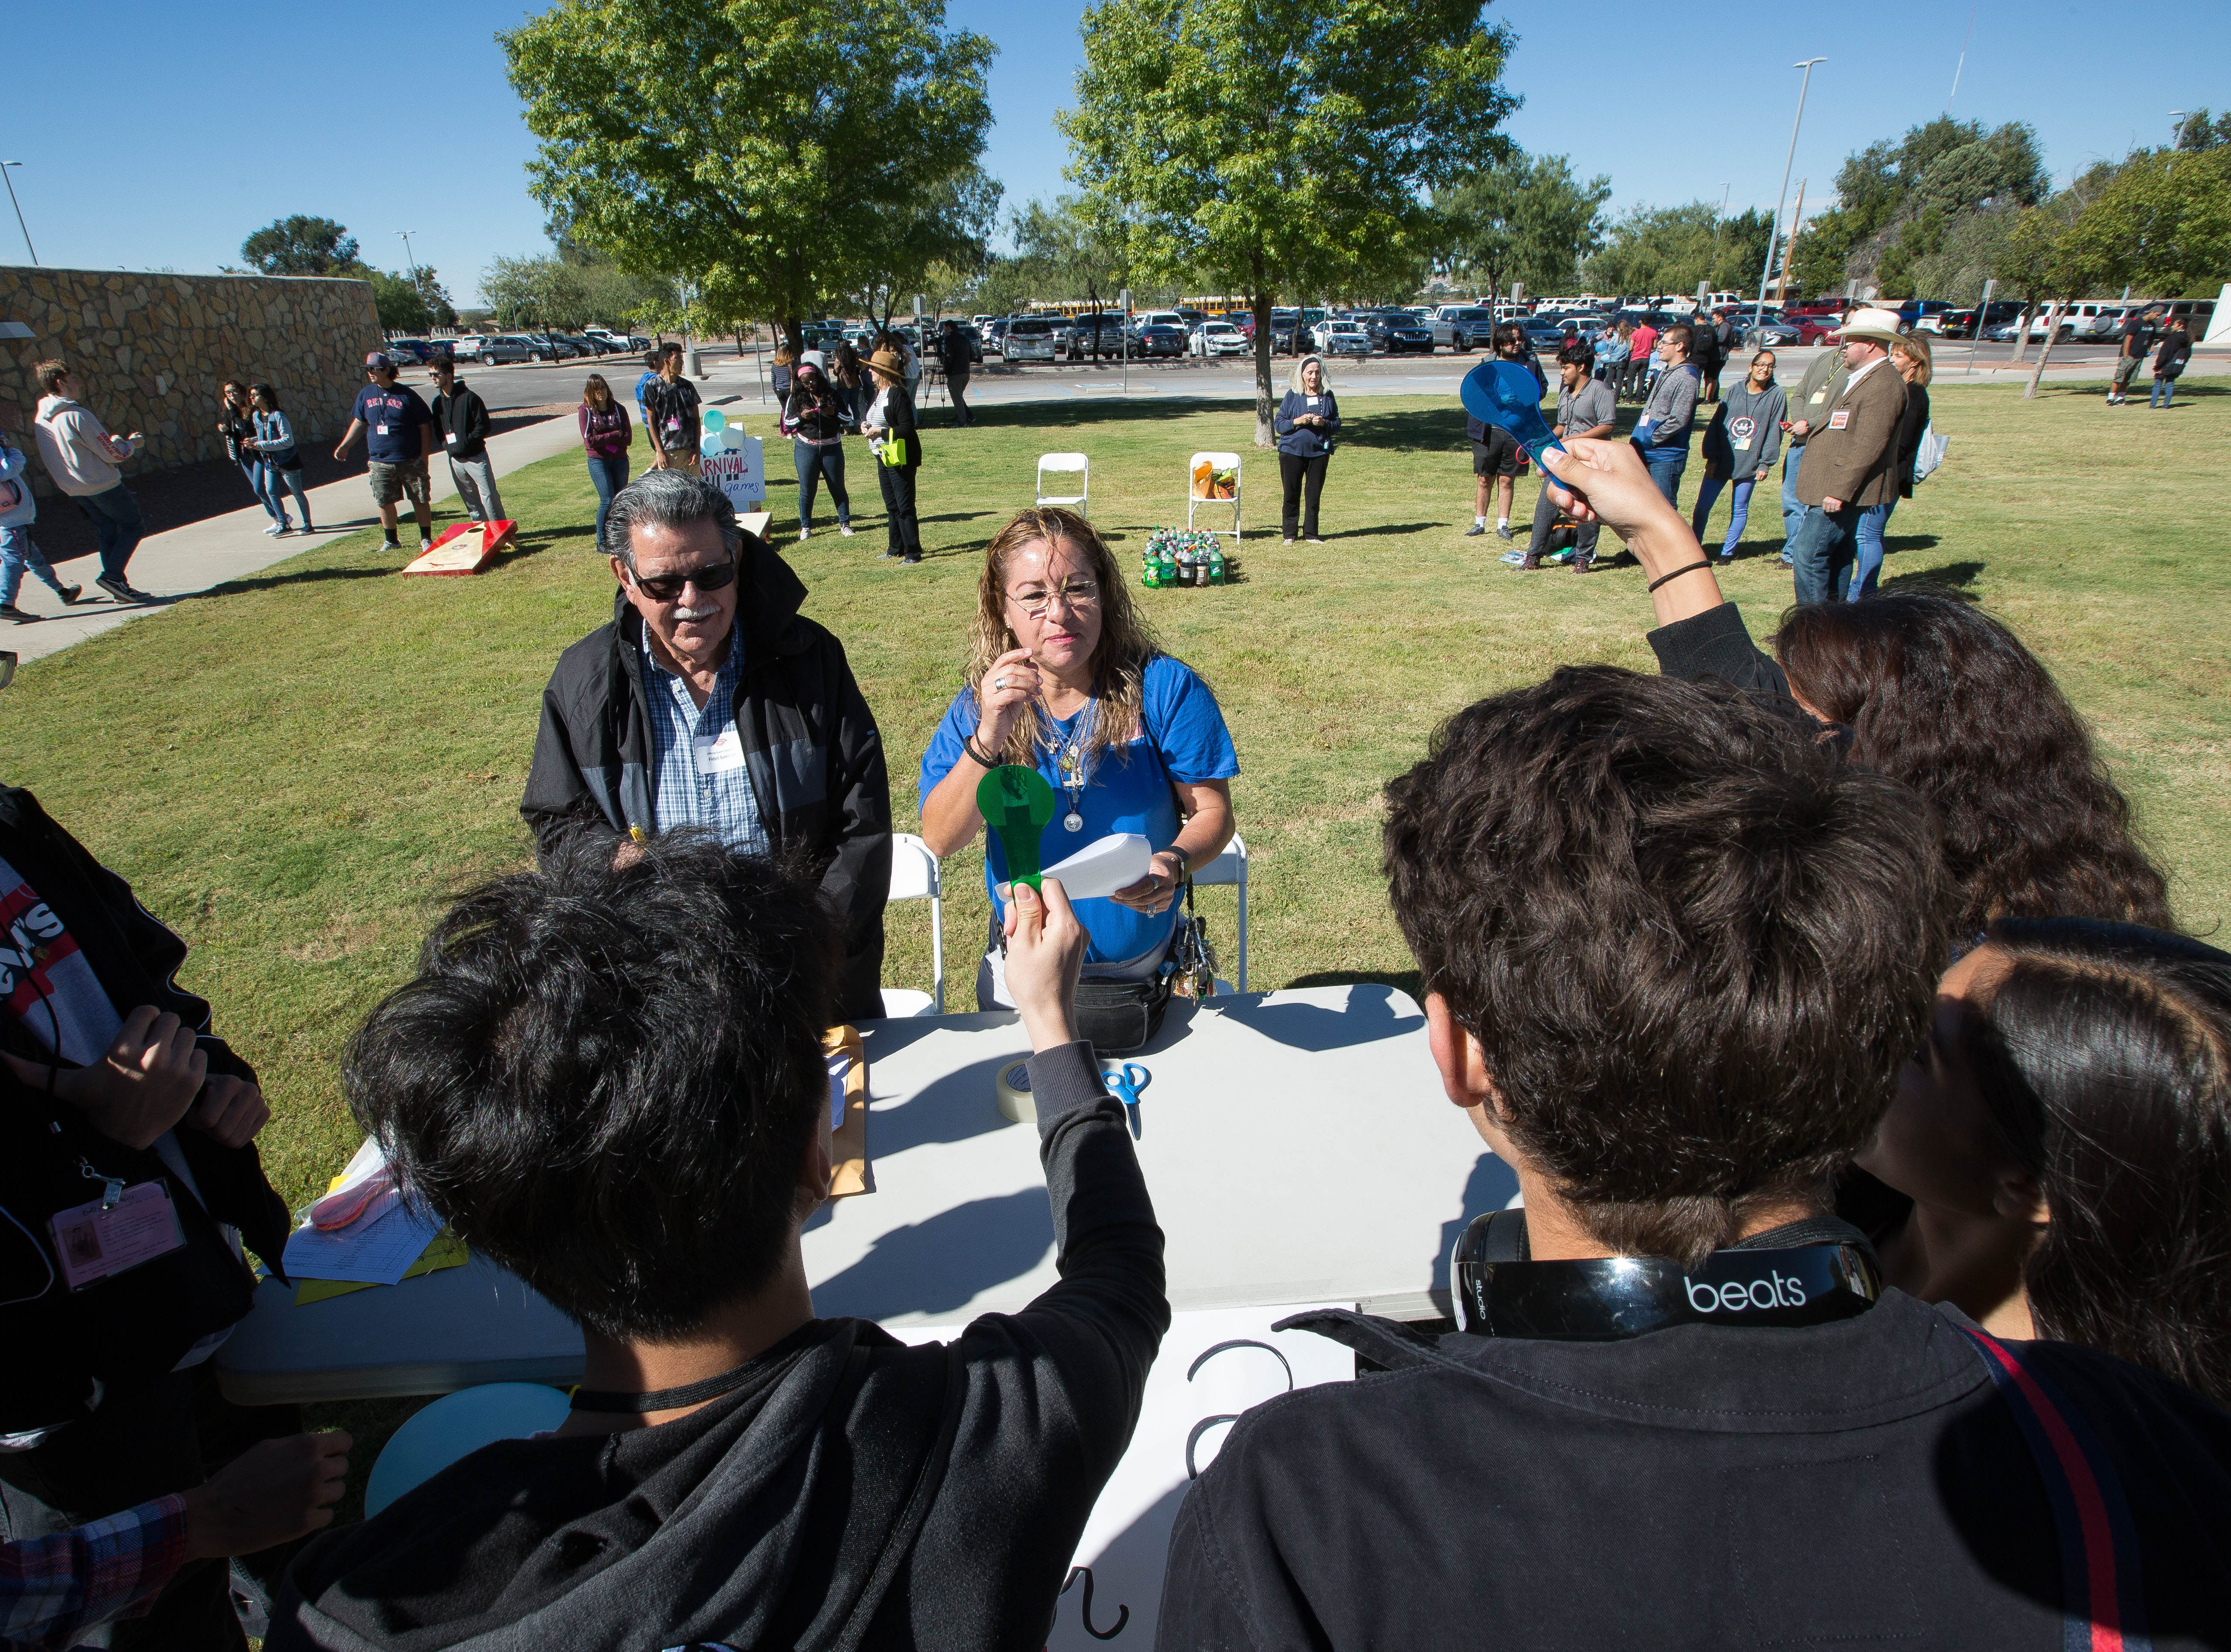 Gina Ortega, right, and Fidel Sanchez, left, quiz a group of Las Cruces High School students during a game of Fact or Fiction, during the Celebrating Democracy in Doña Ana County event, Tuesday, Oct. 9, 2018, at the Doña Ana County Government Center. Abount 300 seniors from area high schools came to the event.